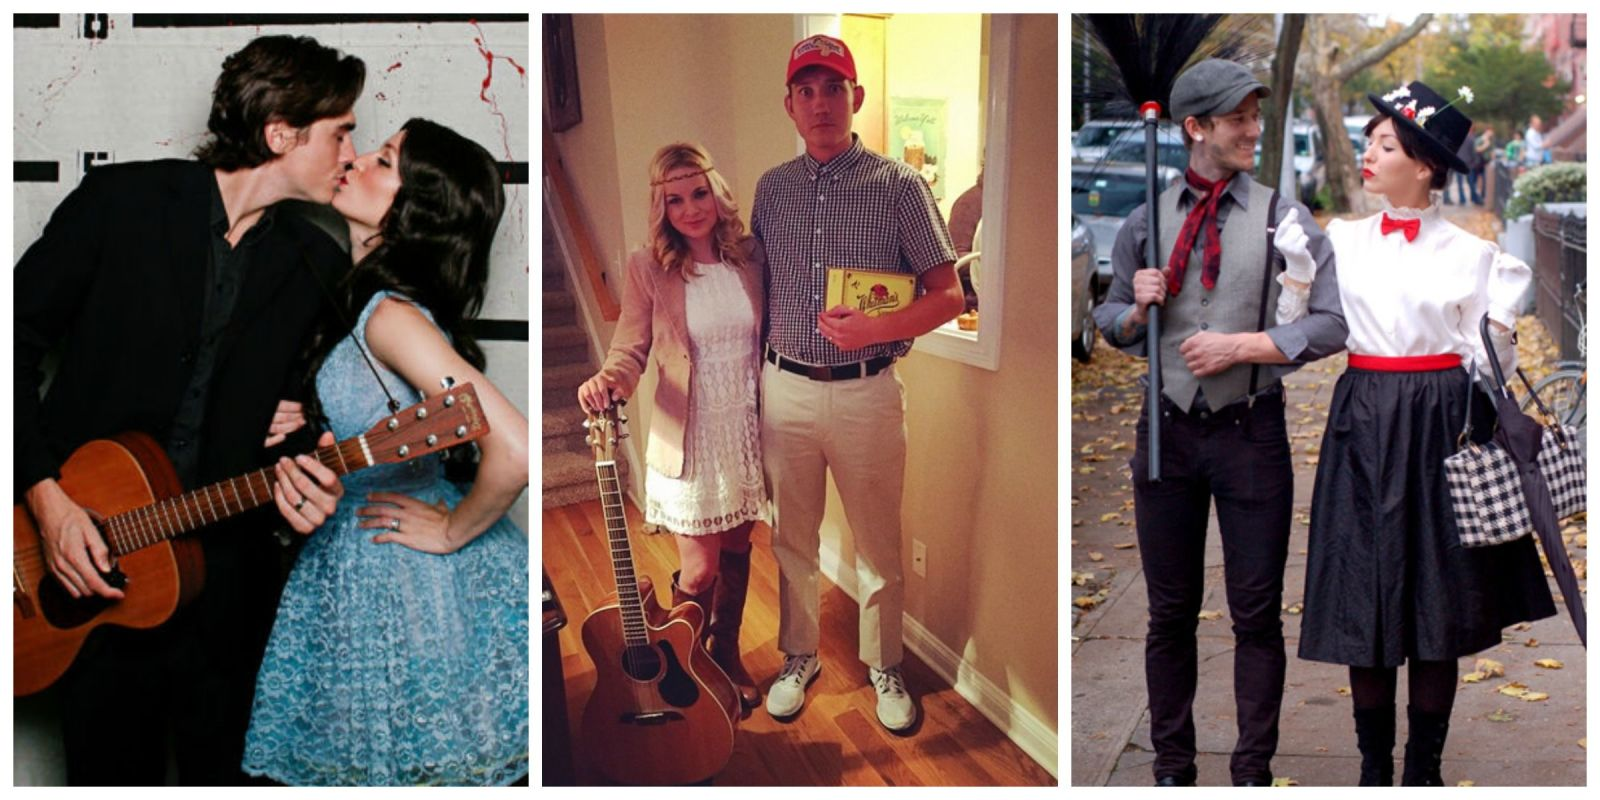 50 cute couples halloween costumes 2017 best ideas for duo costumes - Ideas For Couples For Halloween